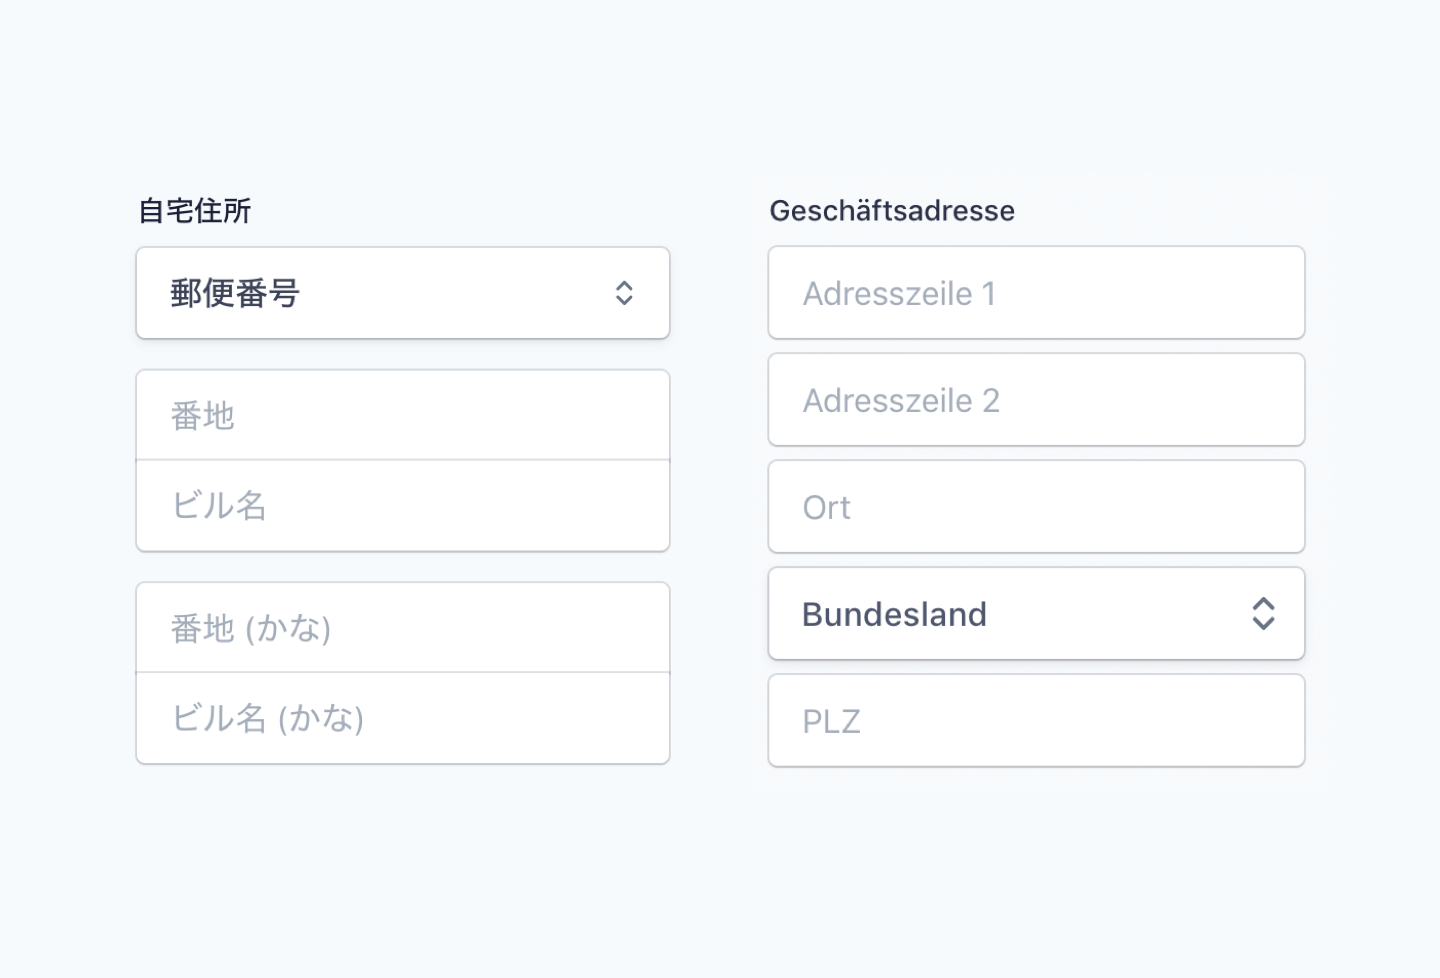 The form handles localization and country-specific requirements.